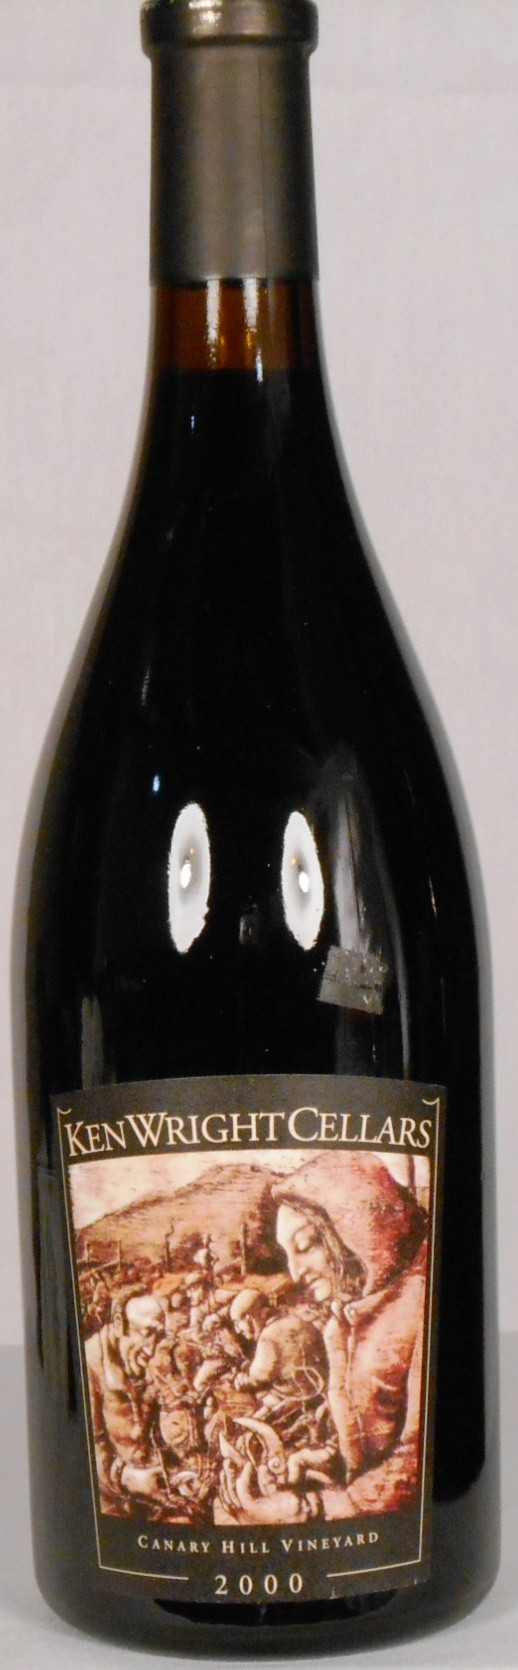 Ken Wright Cellars Pinot Noir Canary Hill Vineyard Eola-Amity Hills 2000